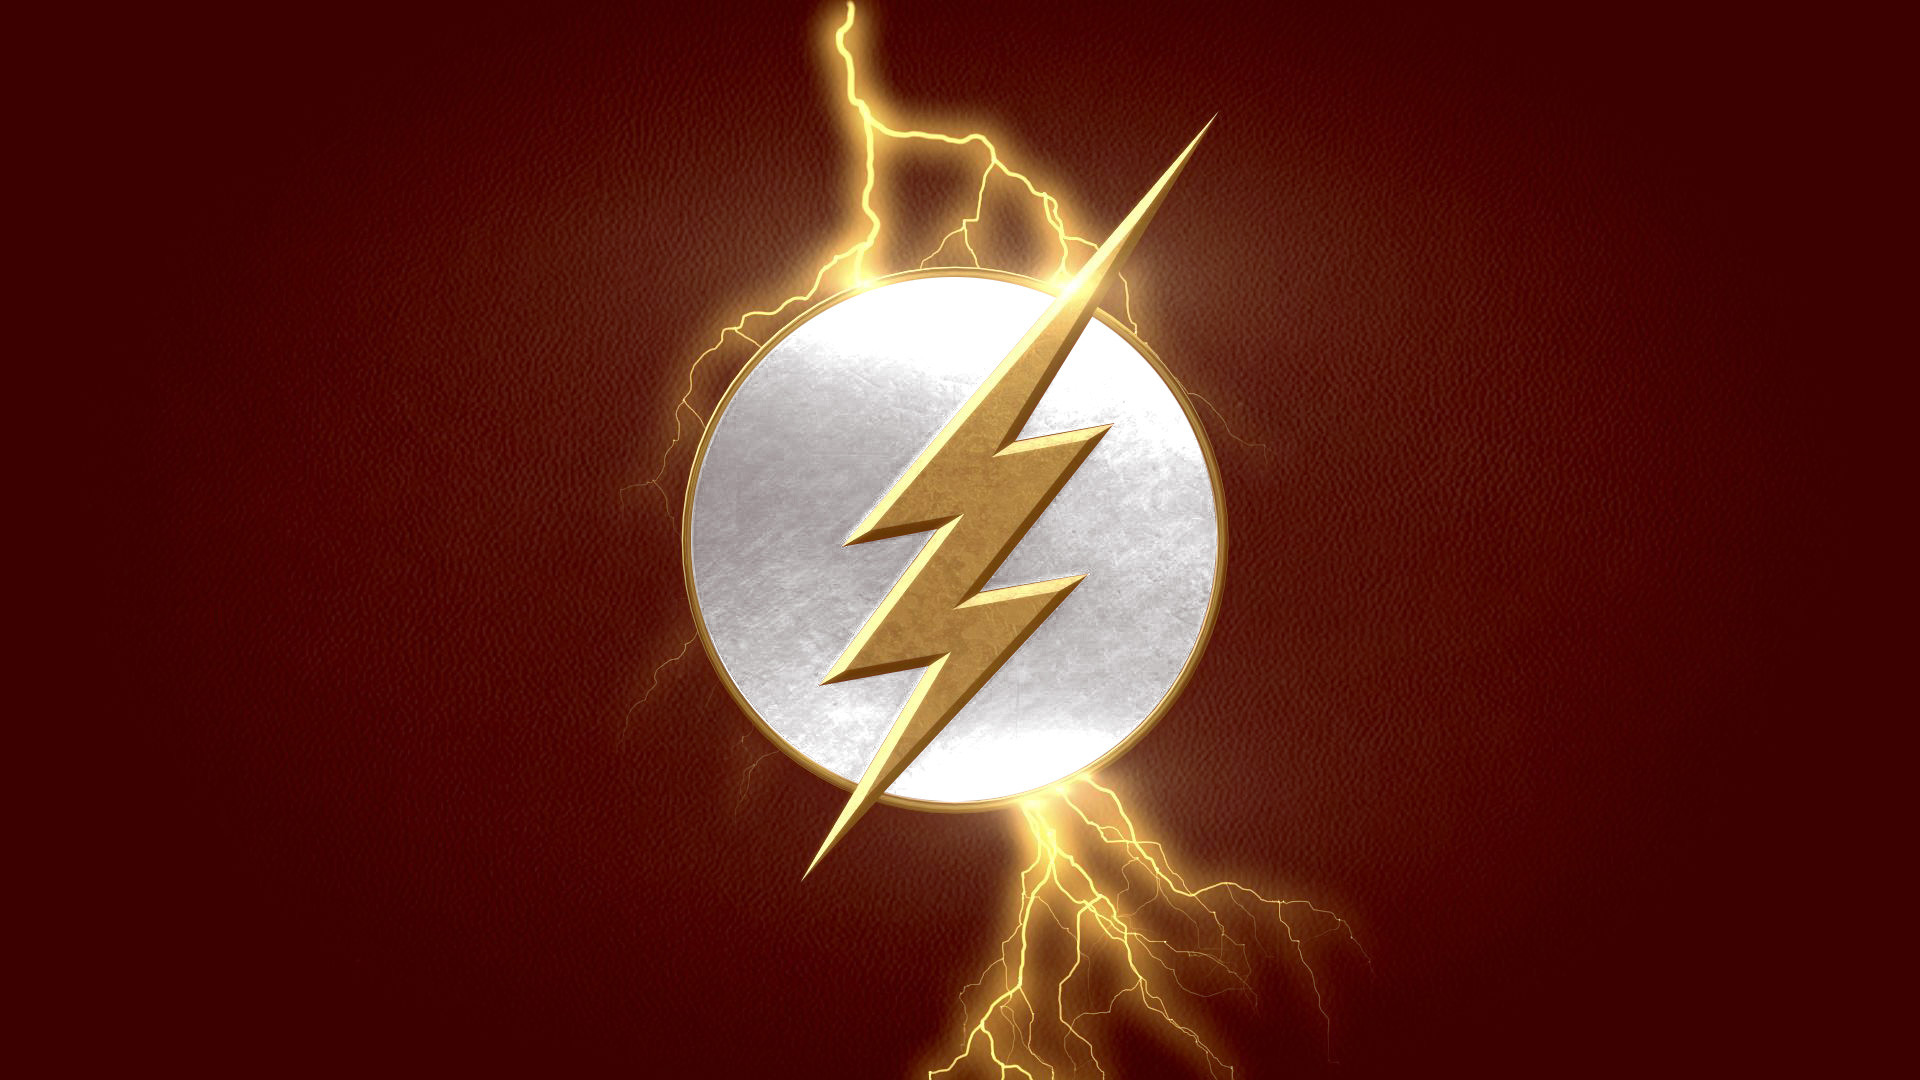 the flash logo wallpaper #4